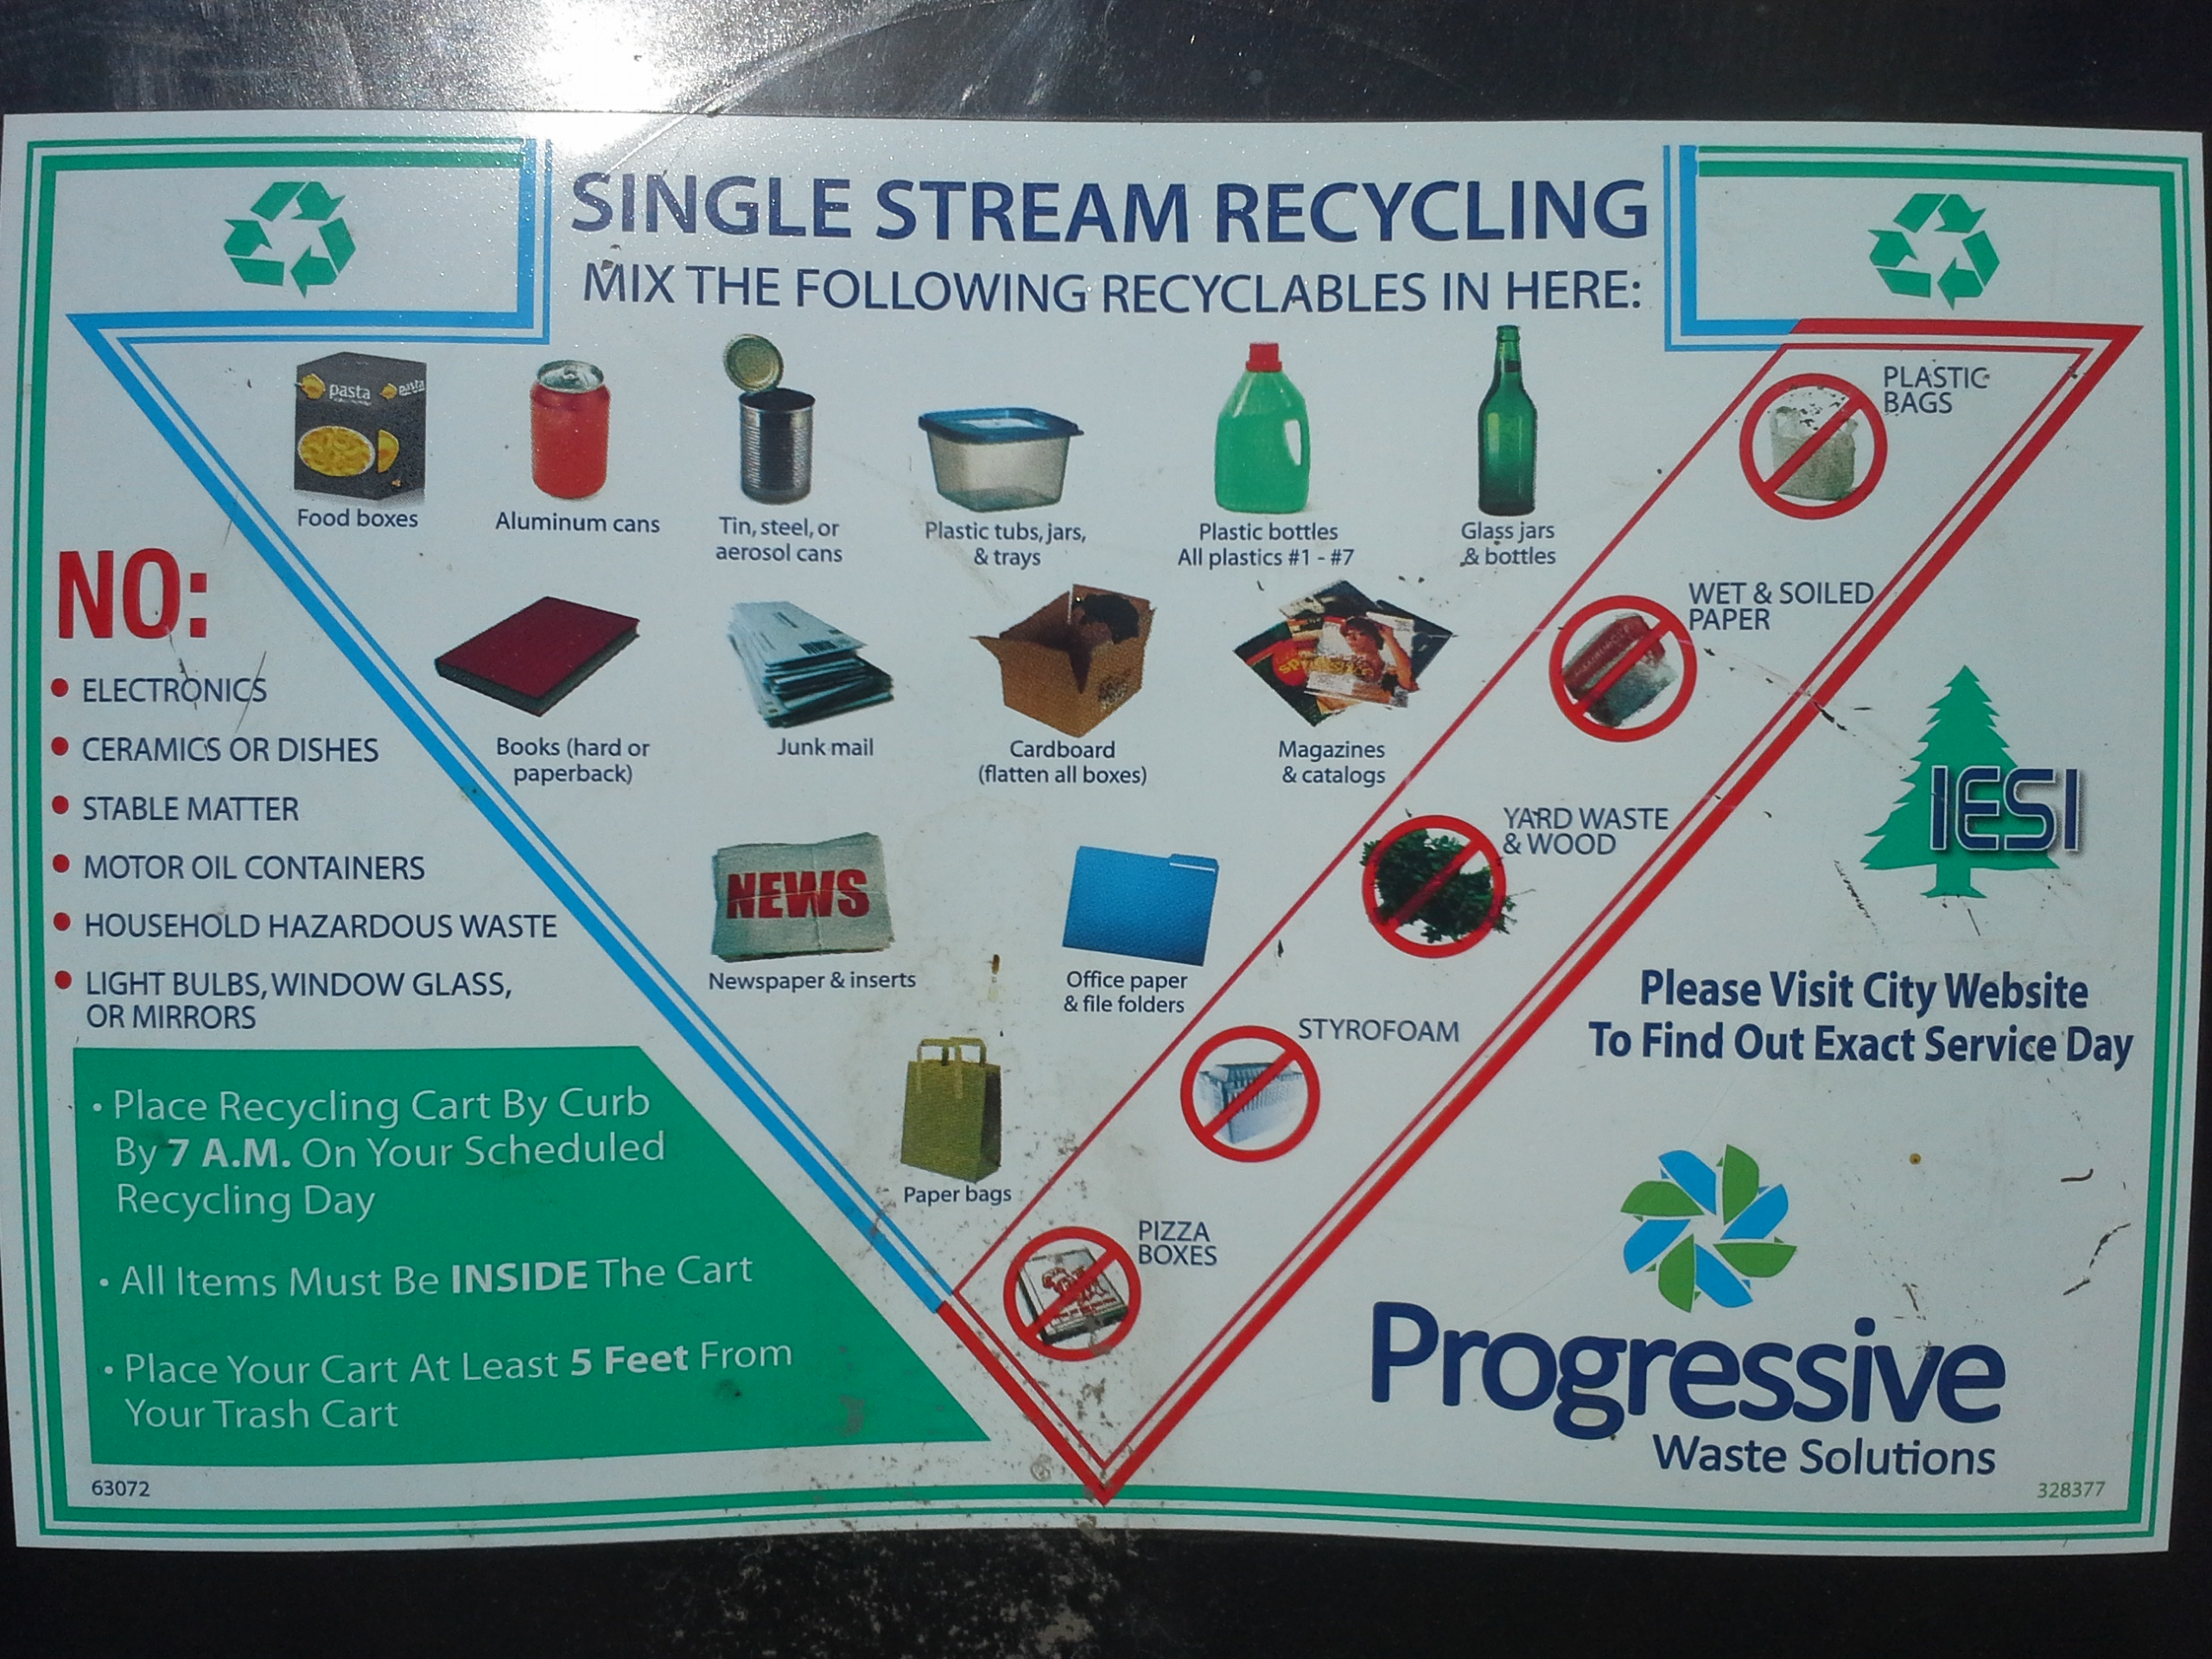 iesi progressive waste solutions